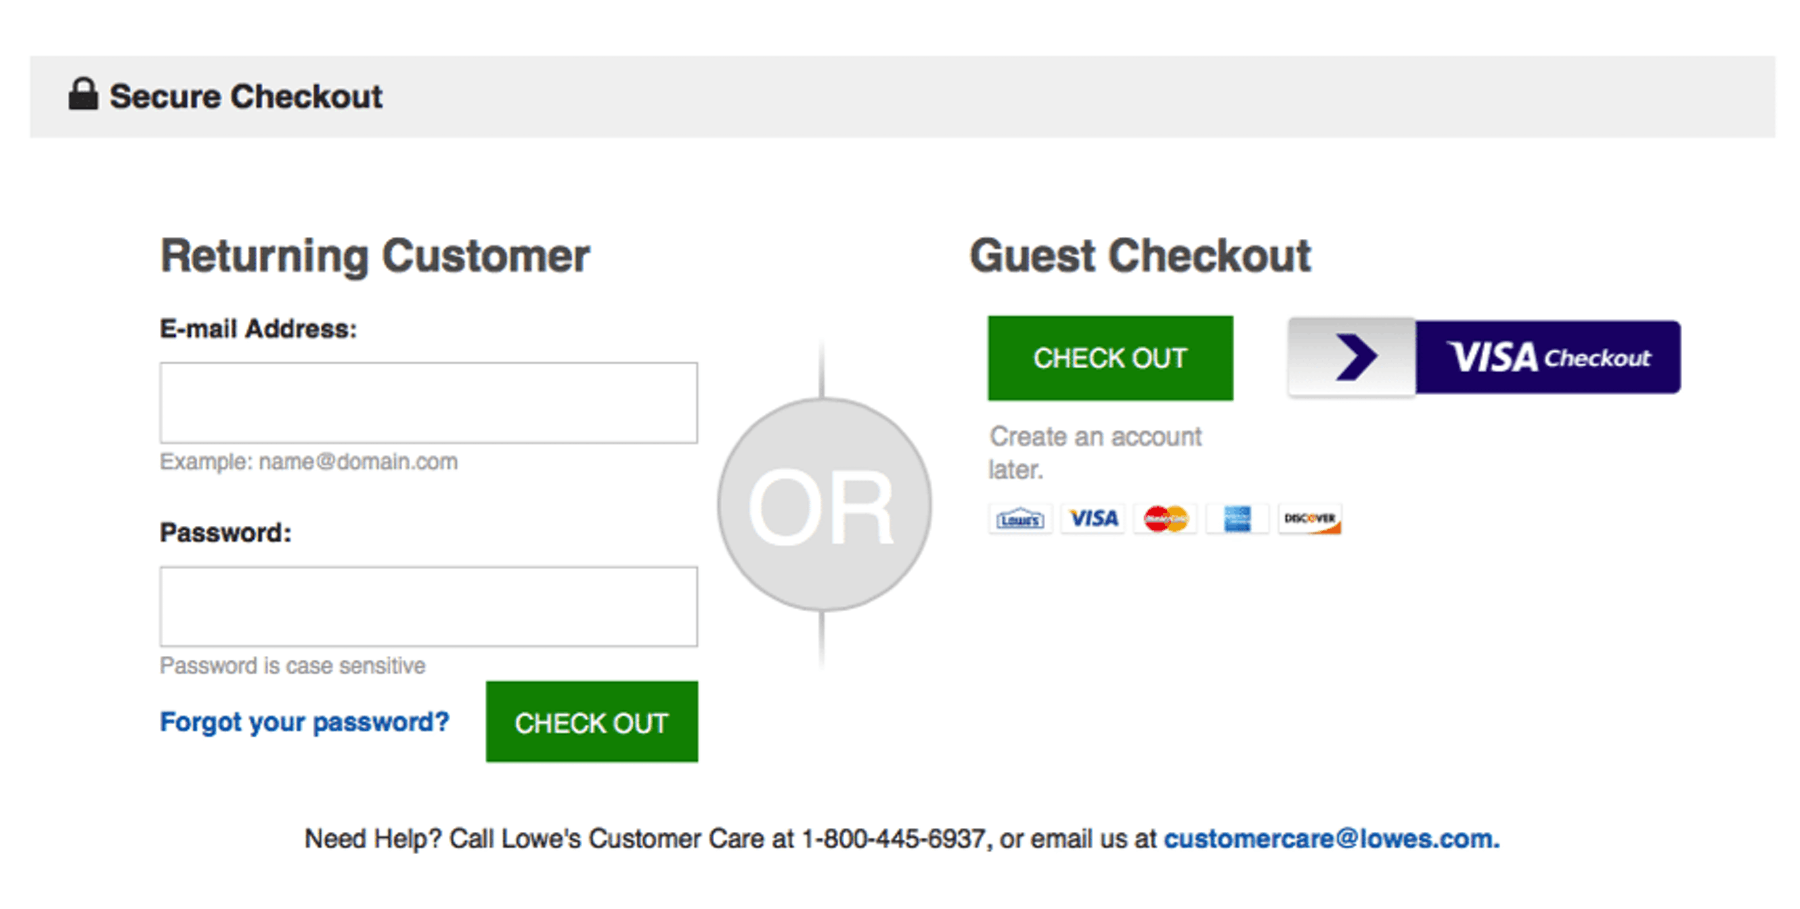 Lowes guest checkout example